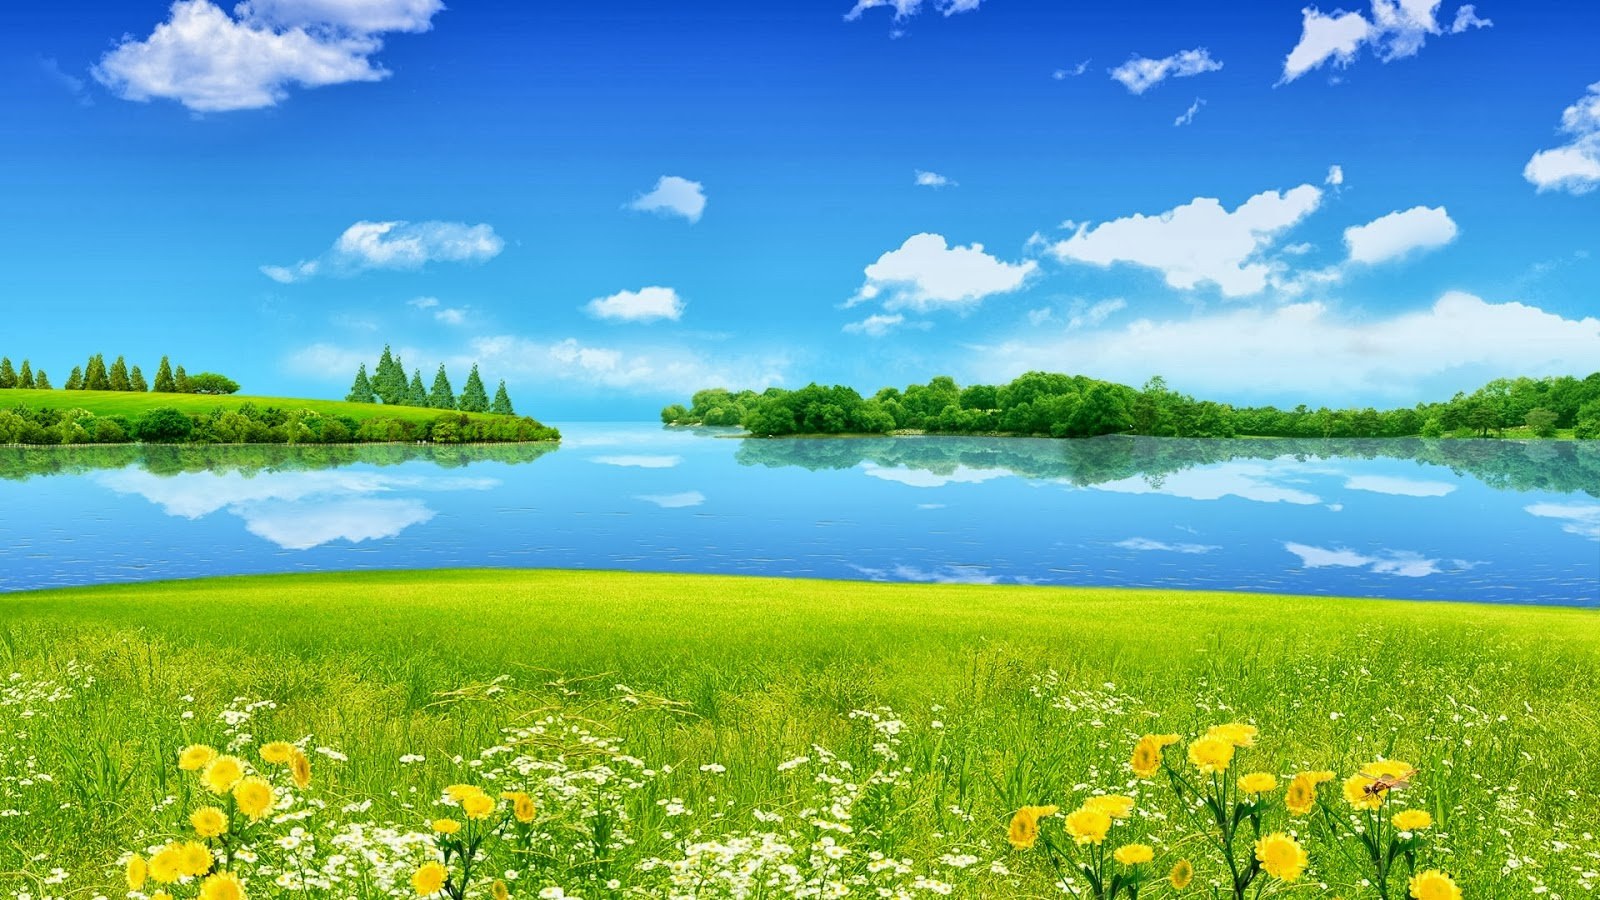 Lake Green Grass Full HD Nature Wallpapers Downloads For Laptop 1600x900